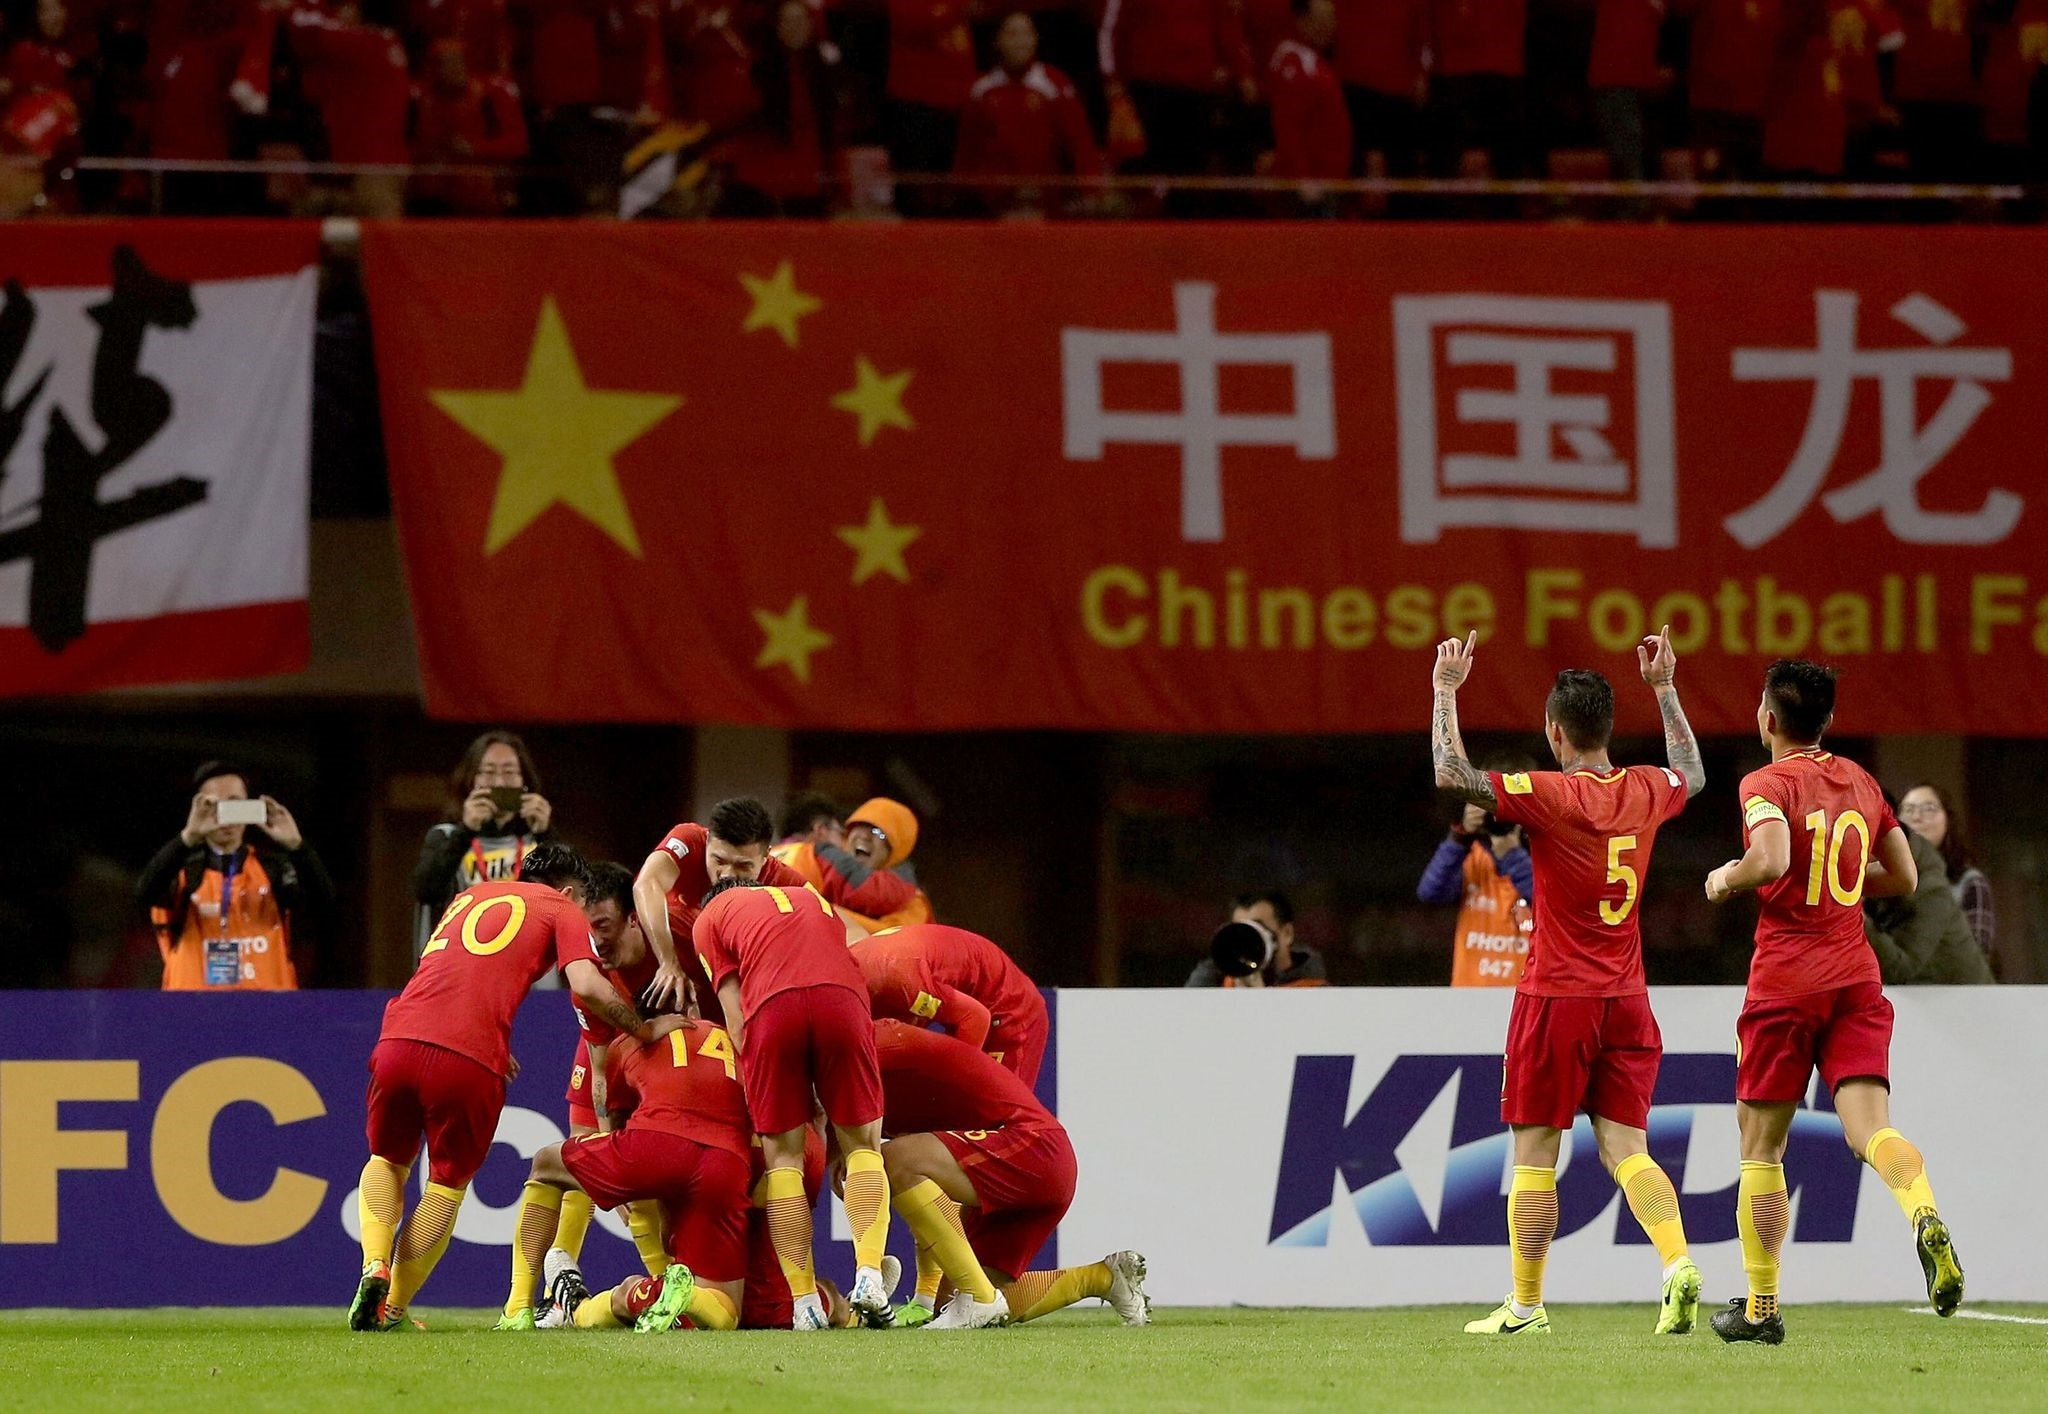 Chinese players celebrate after Yu Dabao scored during the World Cup football qualifying match against South Korea in Changsha, Chinau2019s central Hunan province.